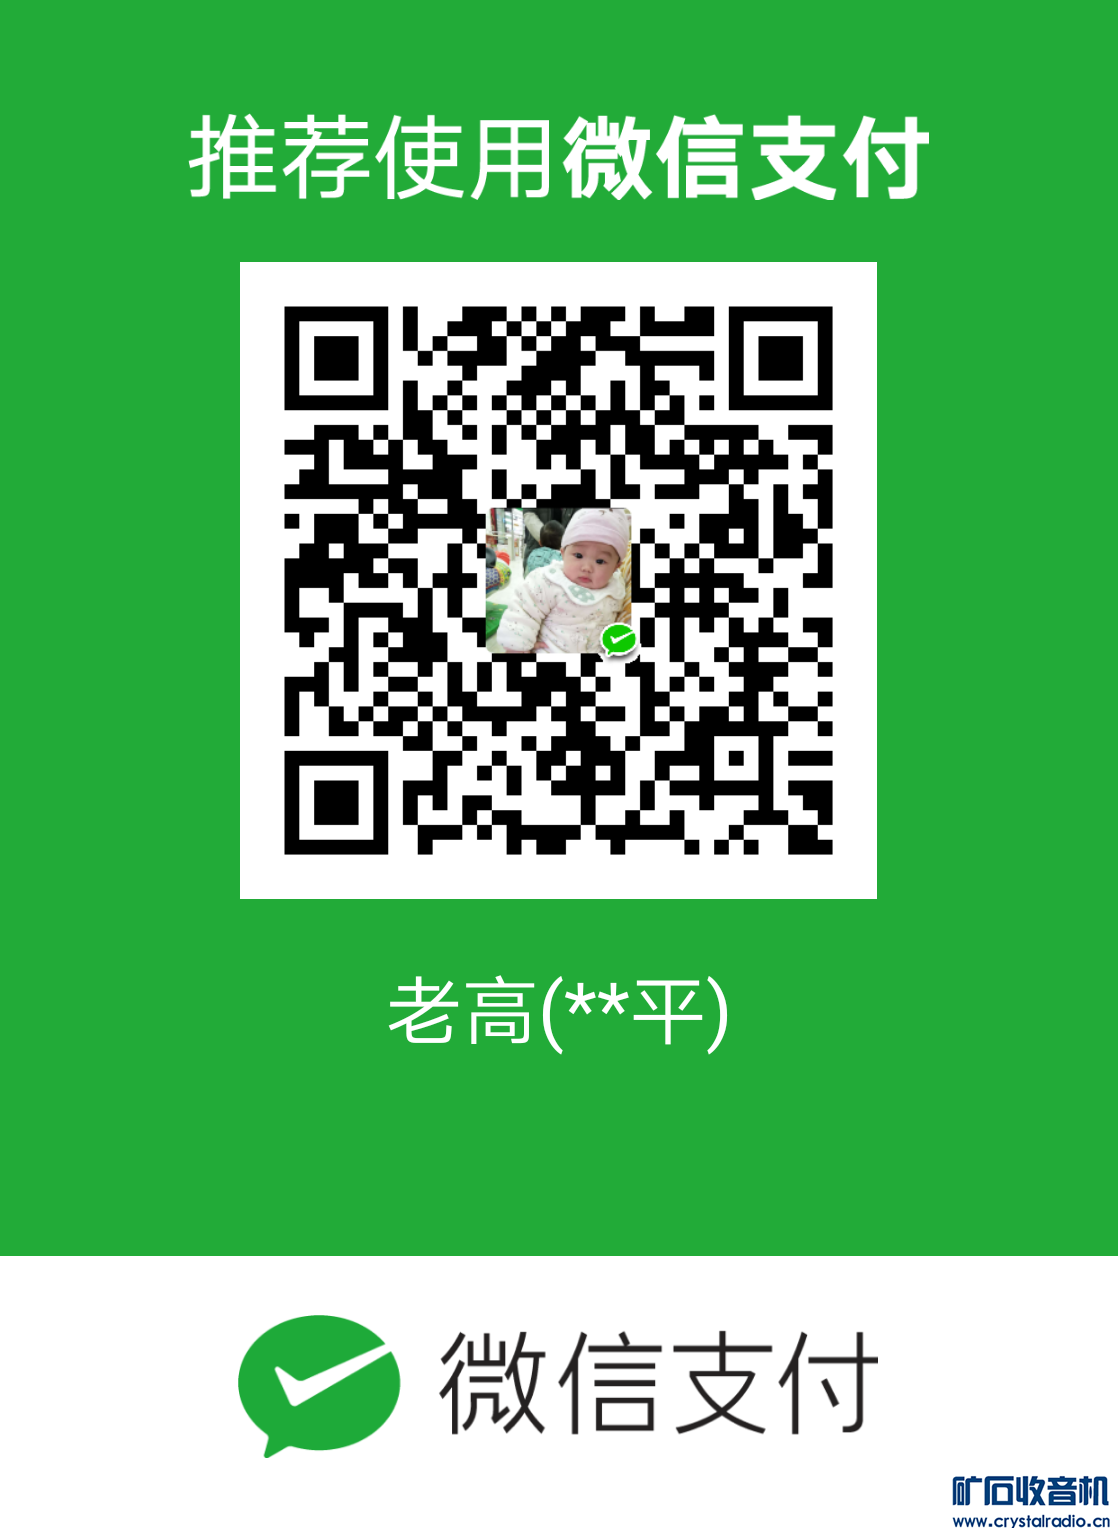 mm_facetoface_collect_qrcode_1557070720643.png